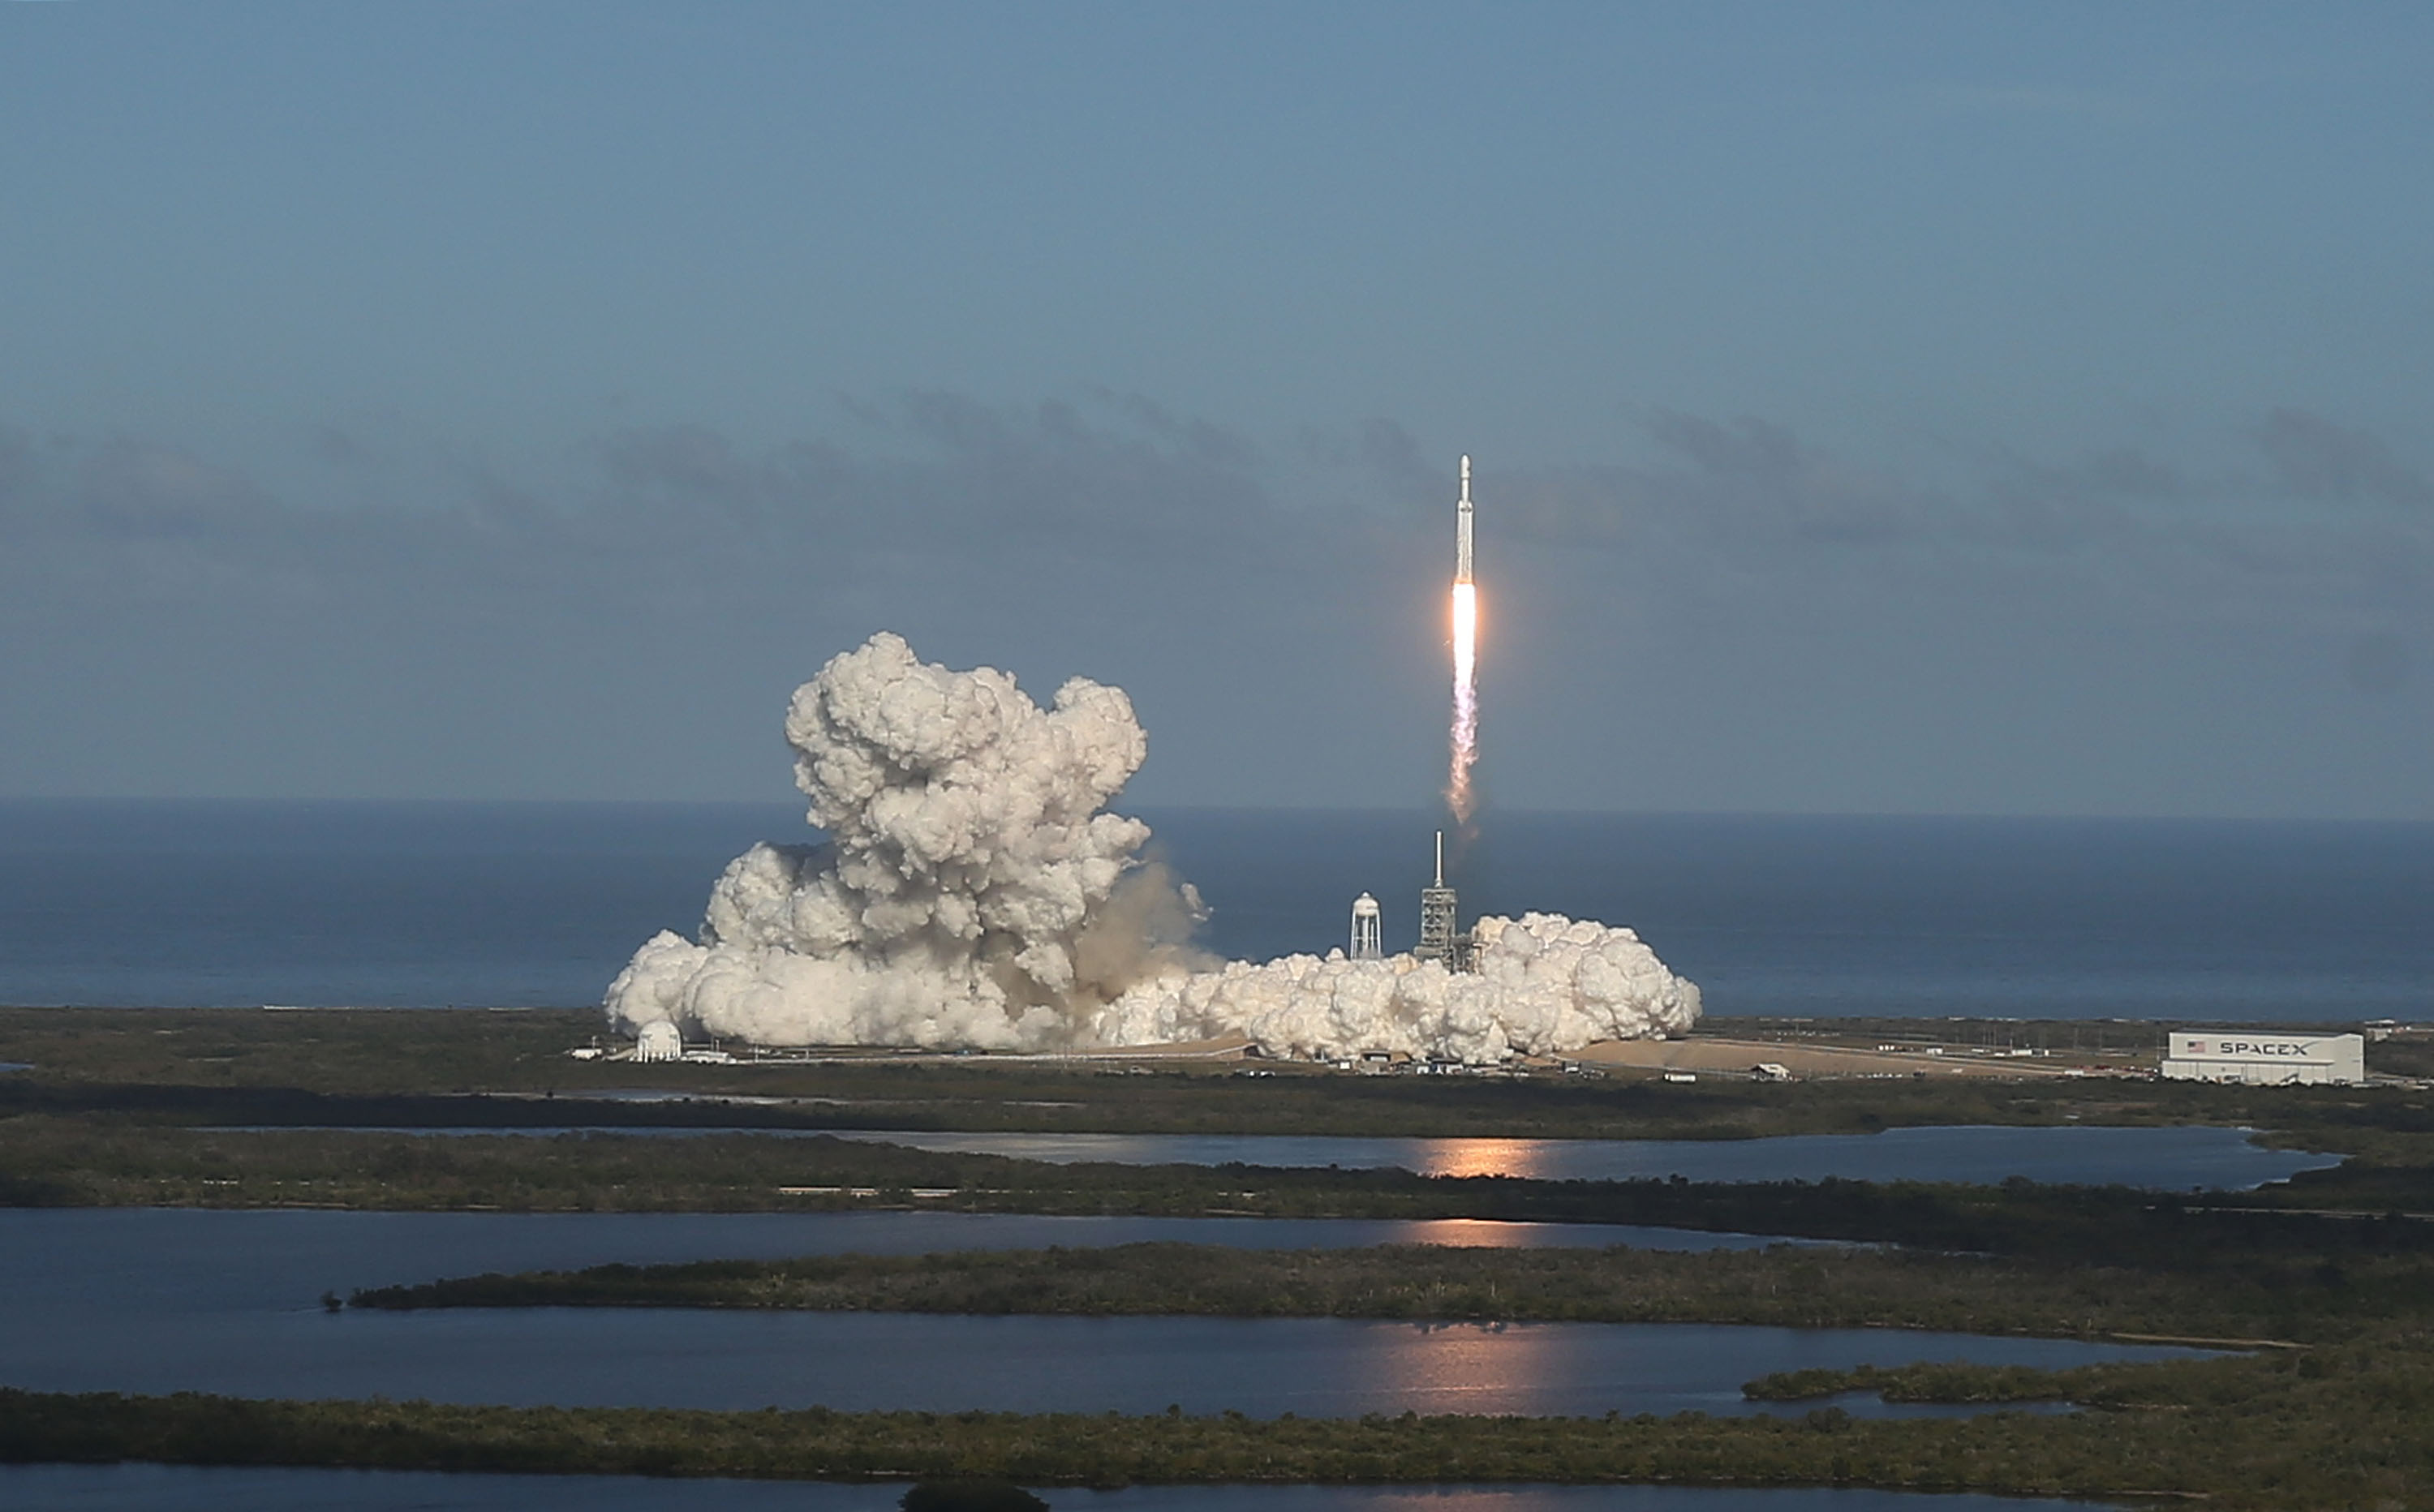 The SpaceX Falcon Heavy rocket lifts off from launch pad 39A at Kennedy Space Center